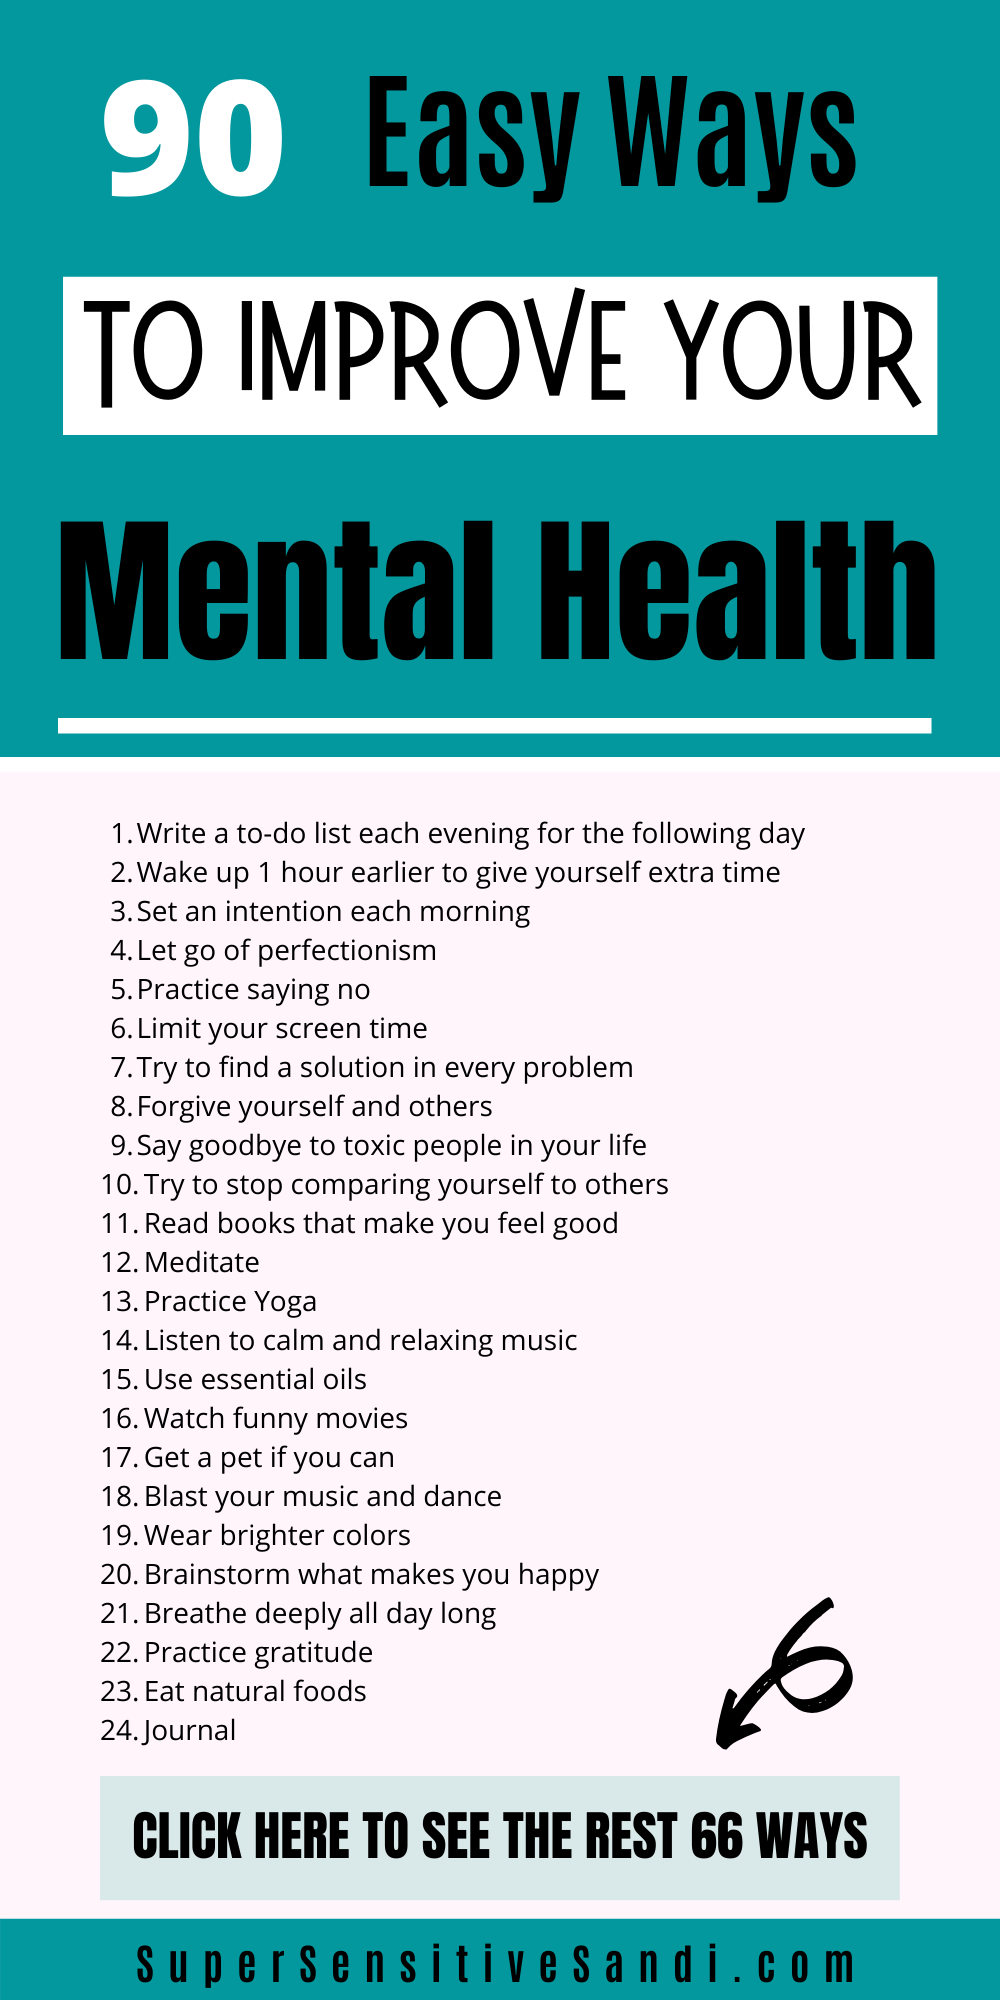 90 Easy Ways to Improve Your Mental Health